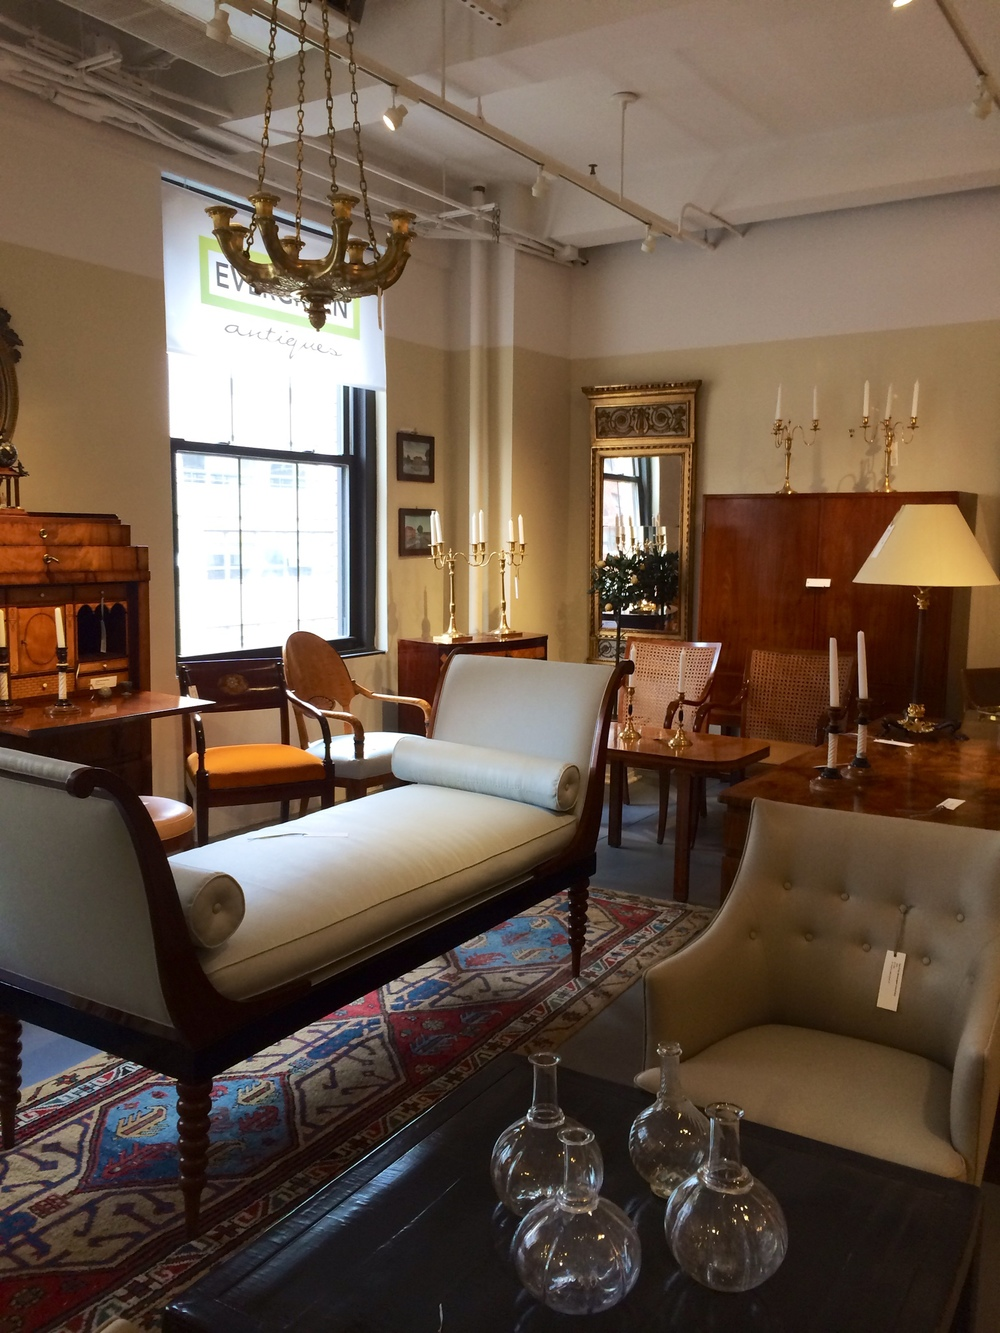 Evergreen Antiques Was Founded In 1982 In SoHo, NYC By Paul Sigenlaub, Who  Had The Vision To Bring Unique Collections Of Scandinavian Furniture And  Design ...